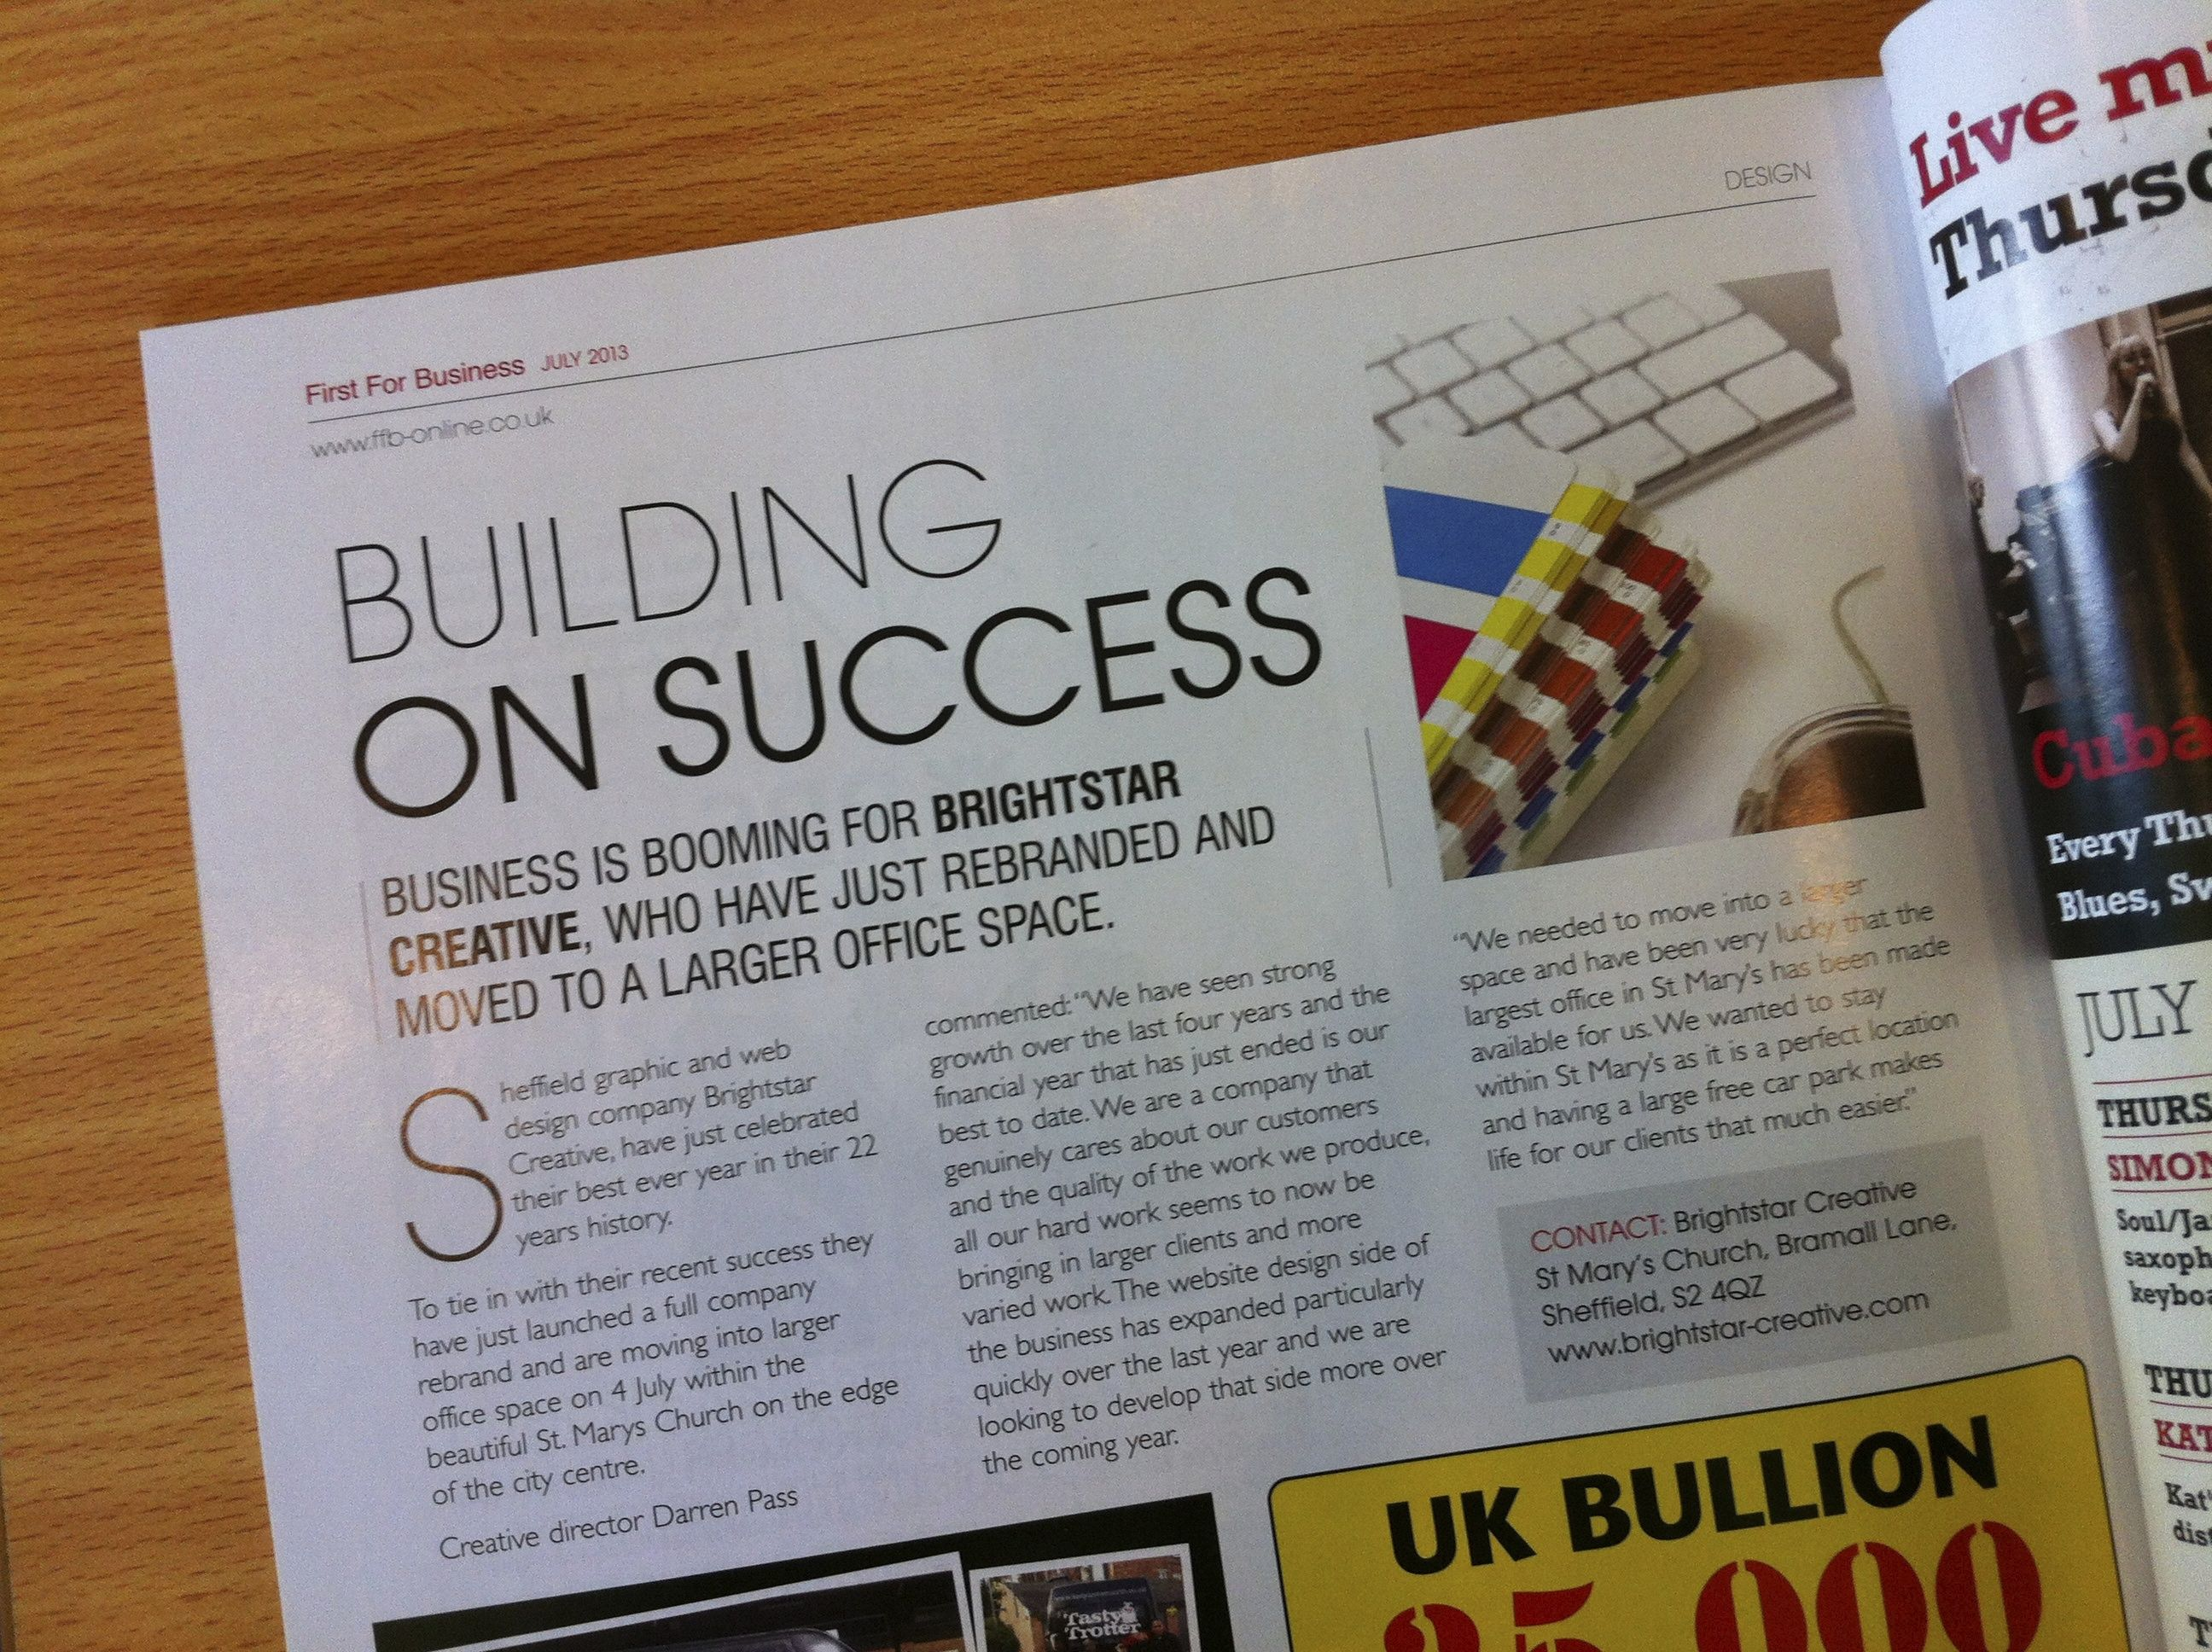 Sheffield Graphic and Web Design Company Building on Success